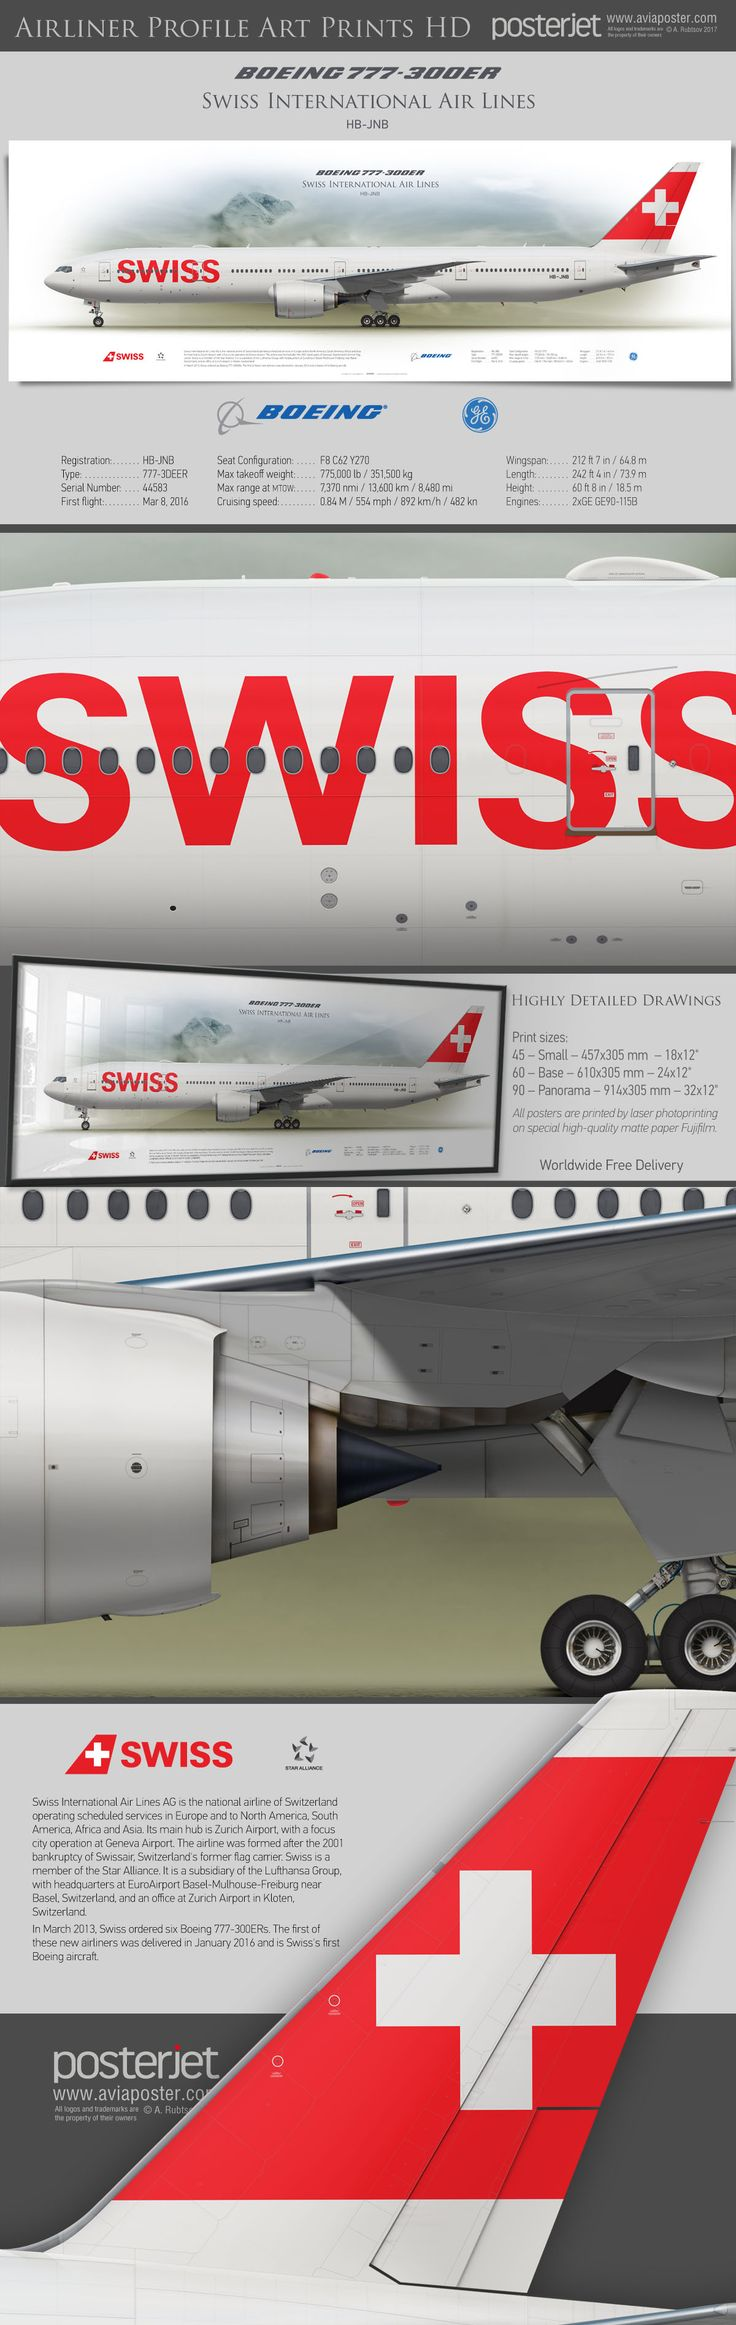 Boeing 777-300ER Swiss International Air Lines HB-JNB | www.aviaposter.com | #airliners #aviation #jetliner #airplane #pilot #aviationlovers #avgeek #jet #airport #pilotlife #cabincrew